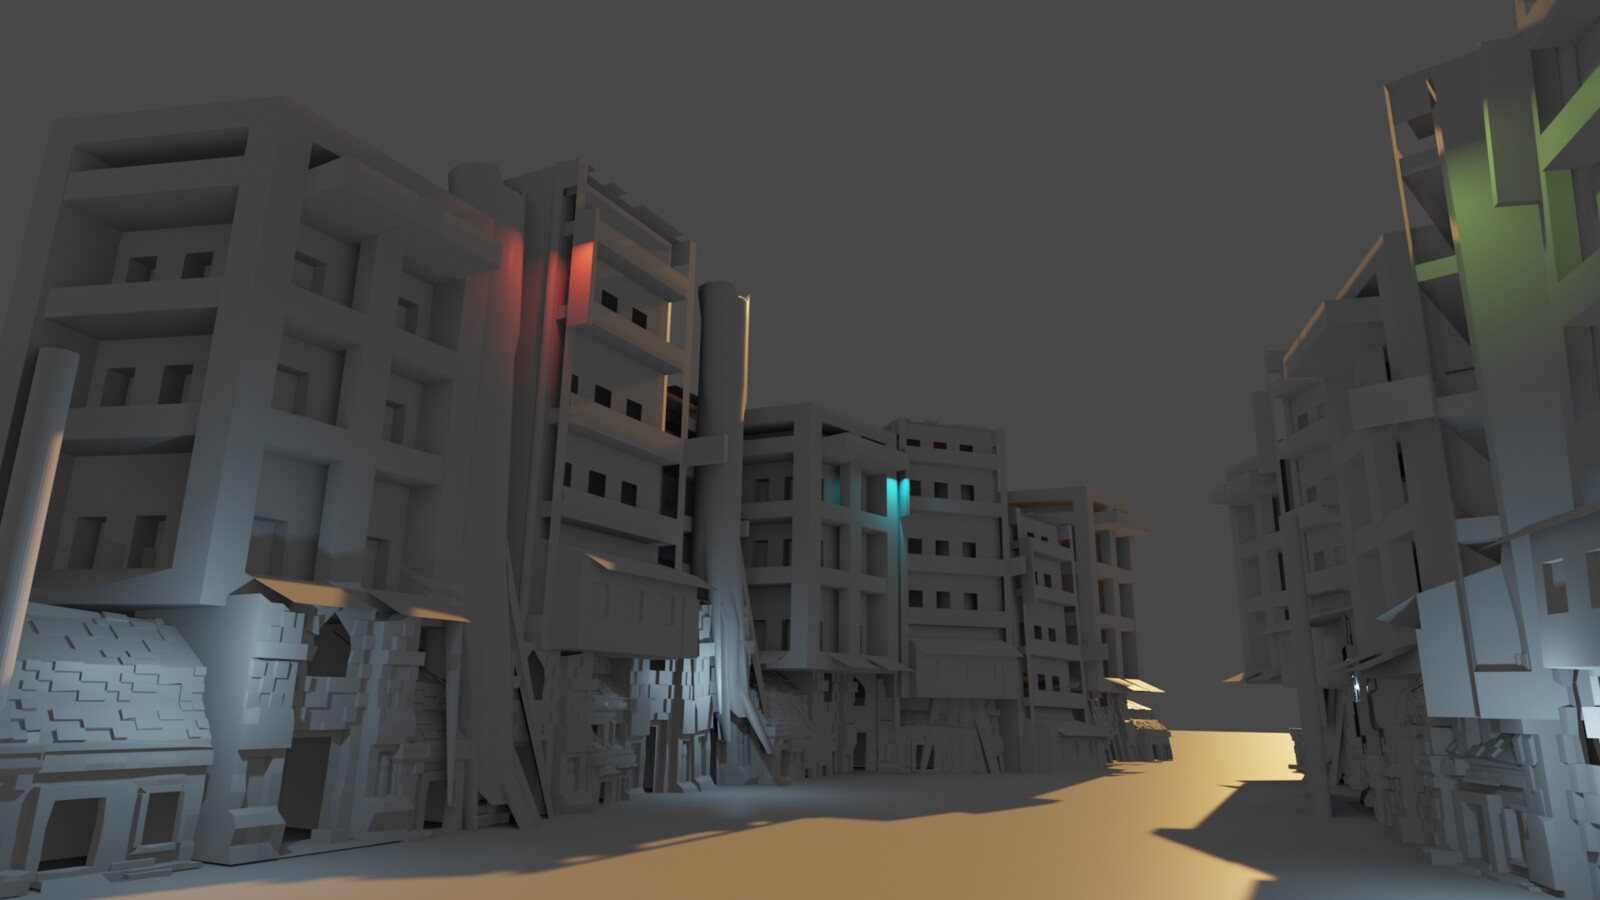 Initial blockout and render.